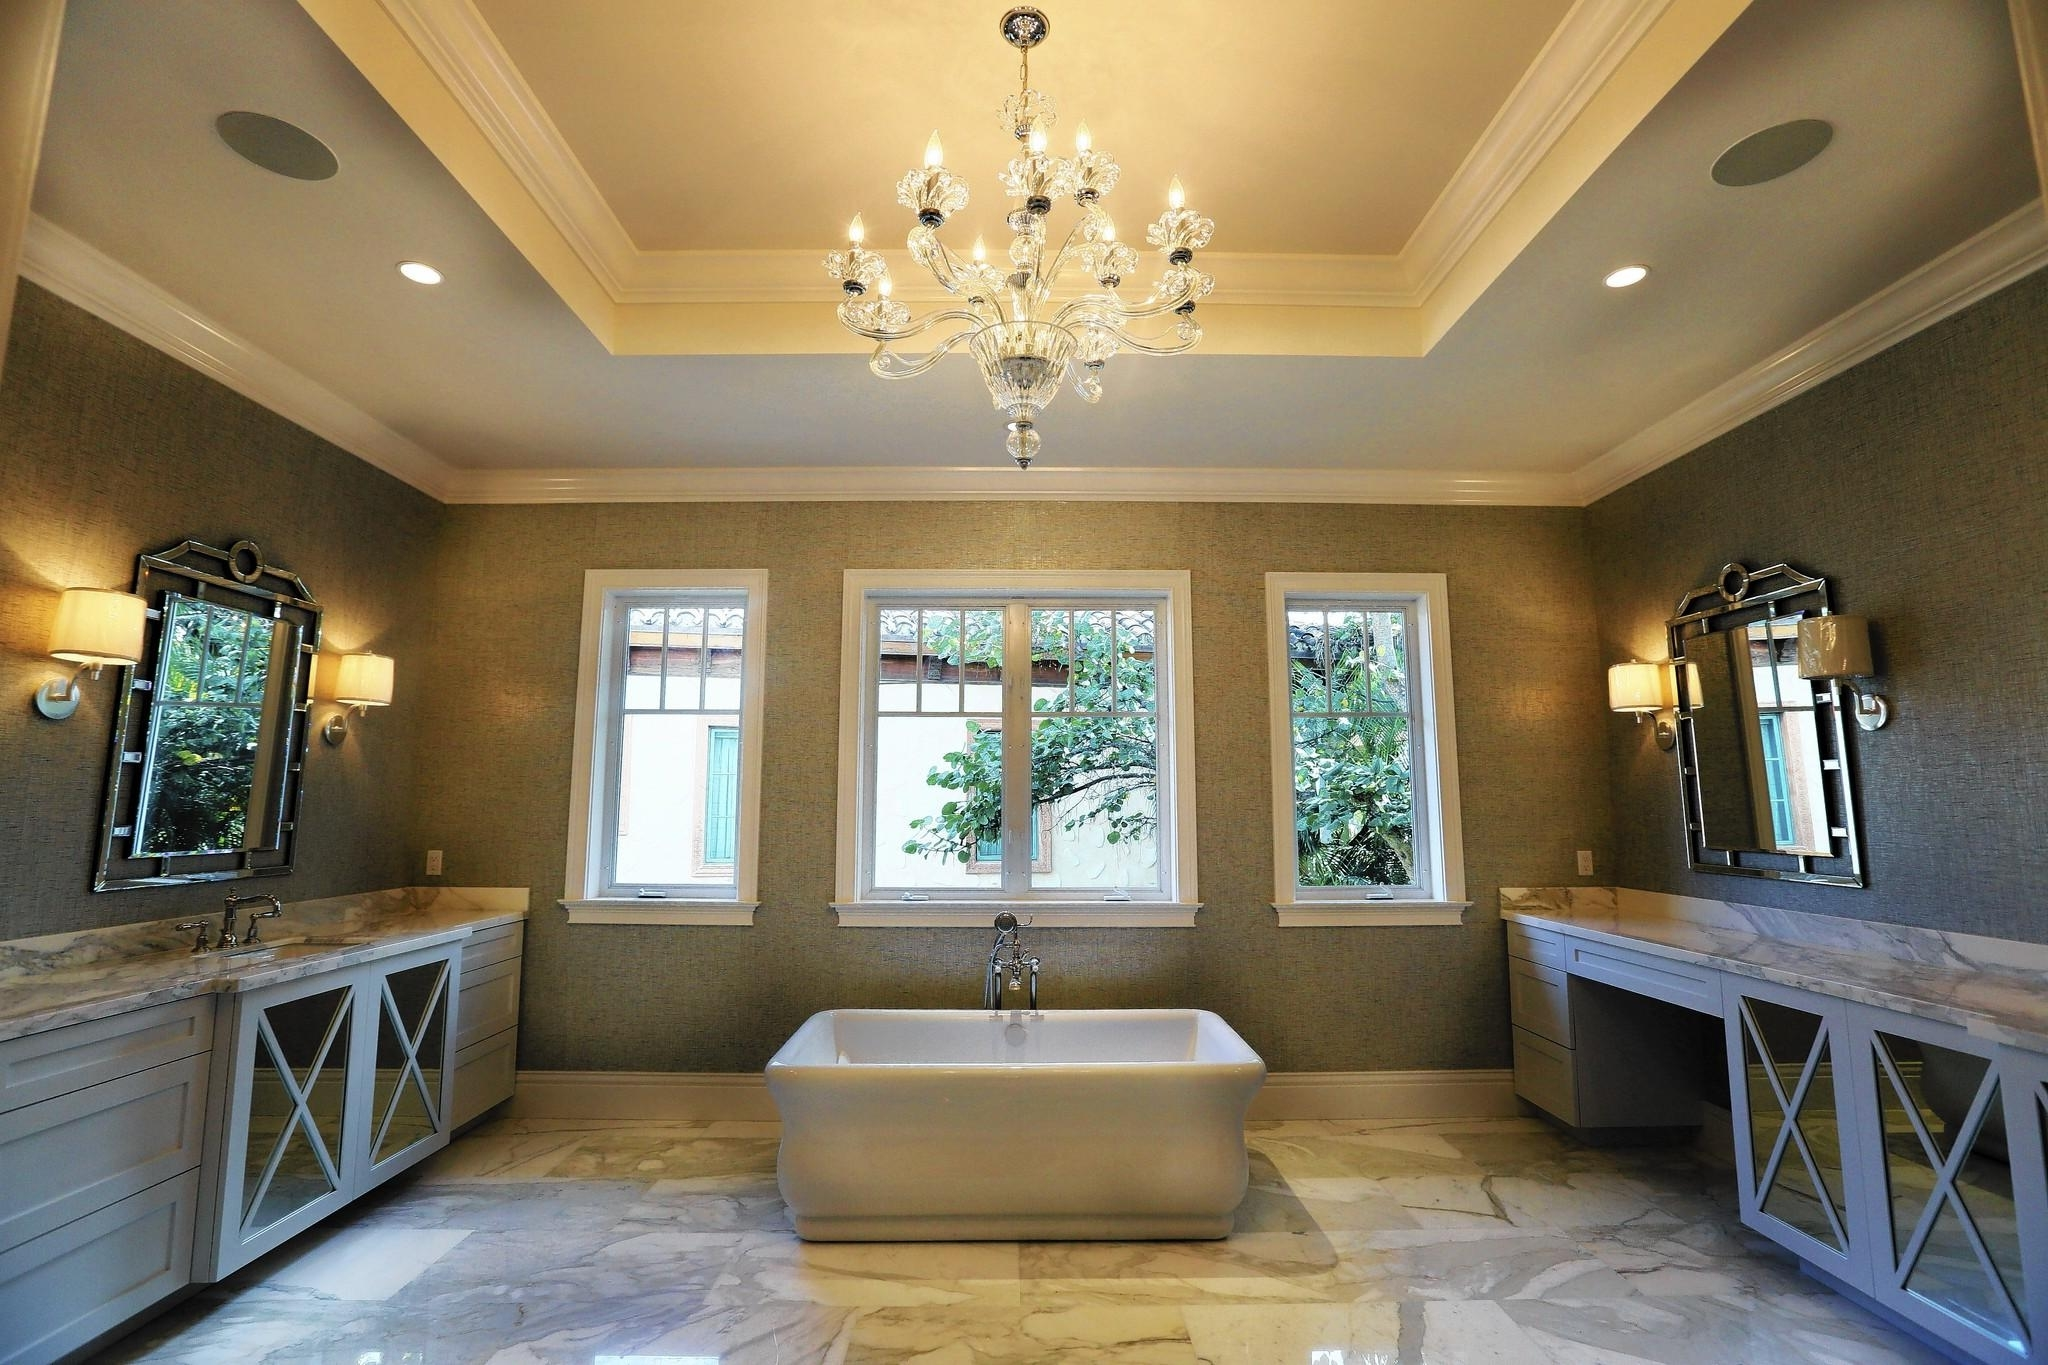 Featured Image of Chic American Bathroom Design Inspirations